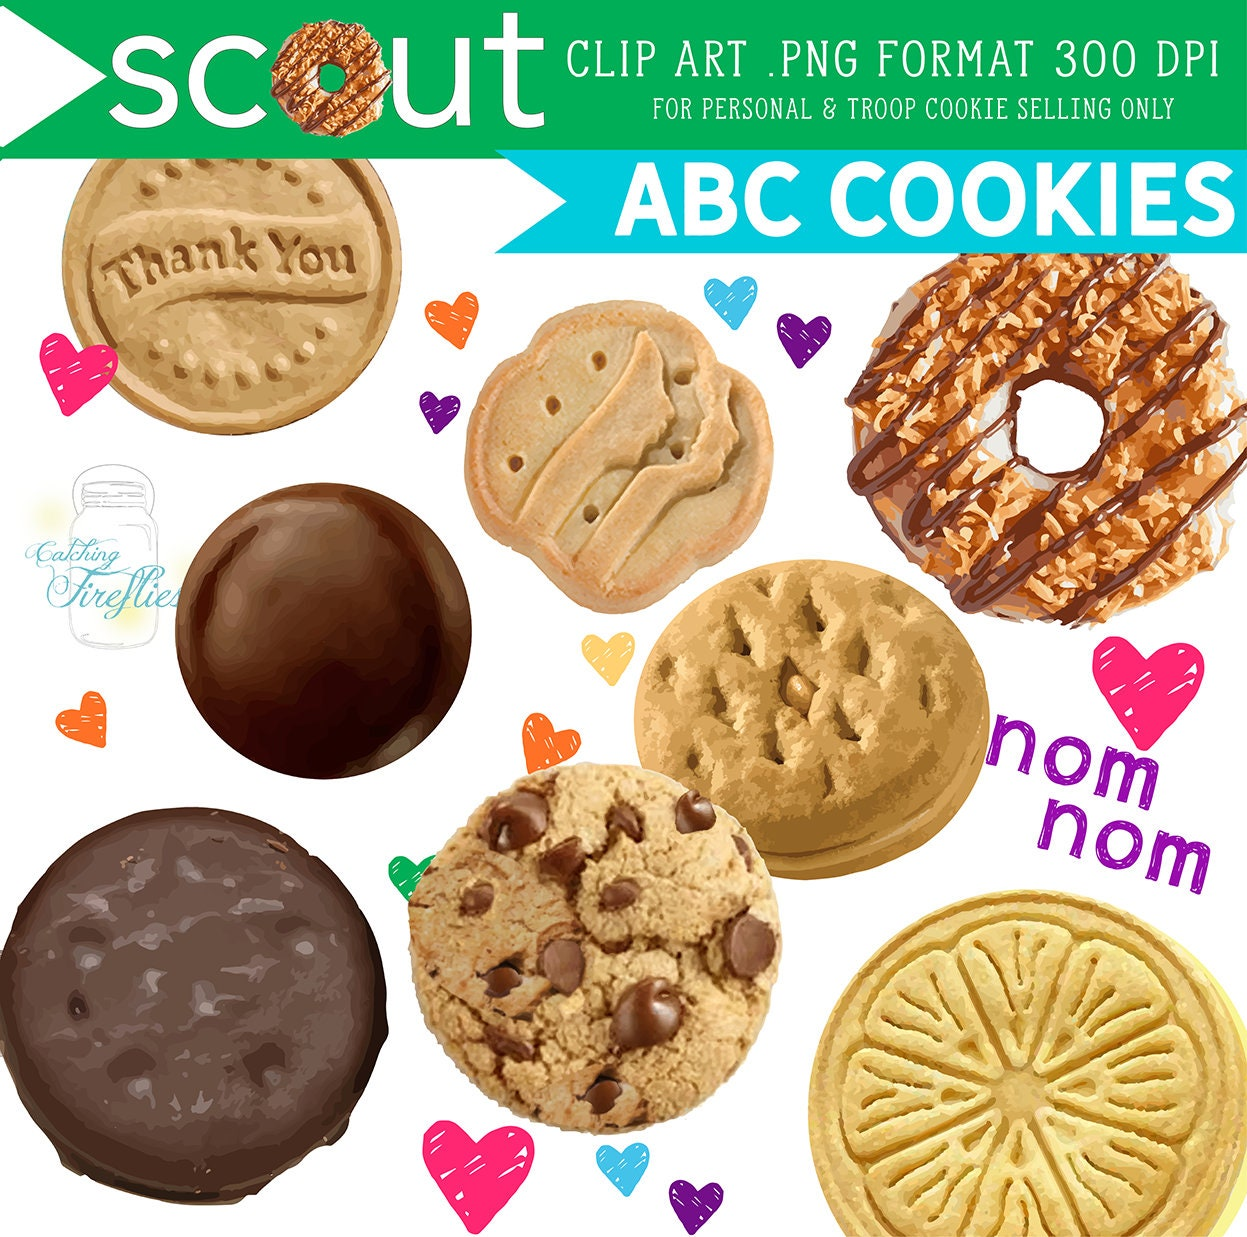 Girl Scout Cookie Clip Art Abc 2019 Cookie Donate To The -9470